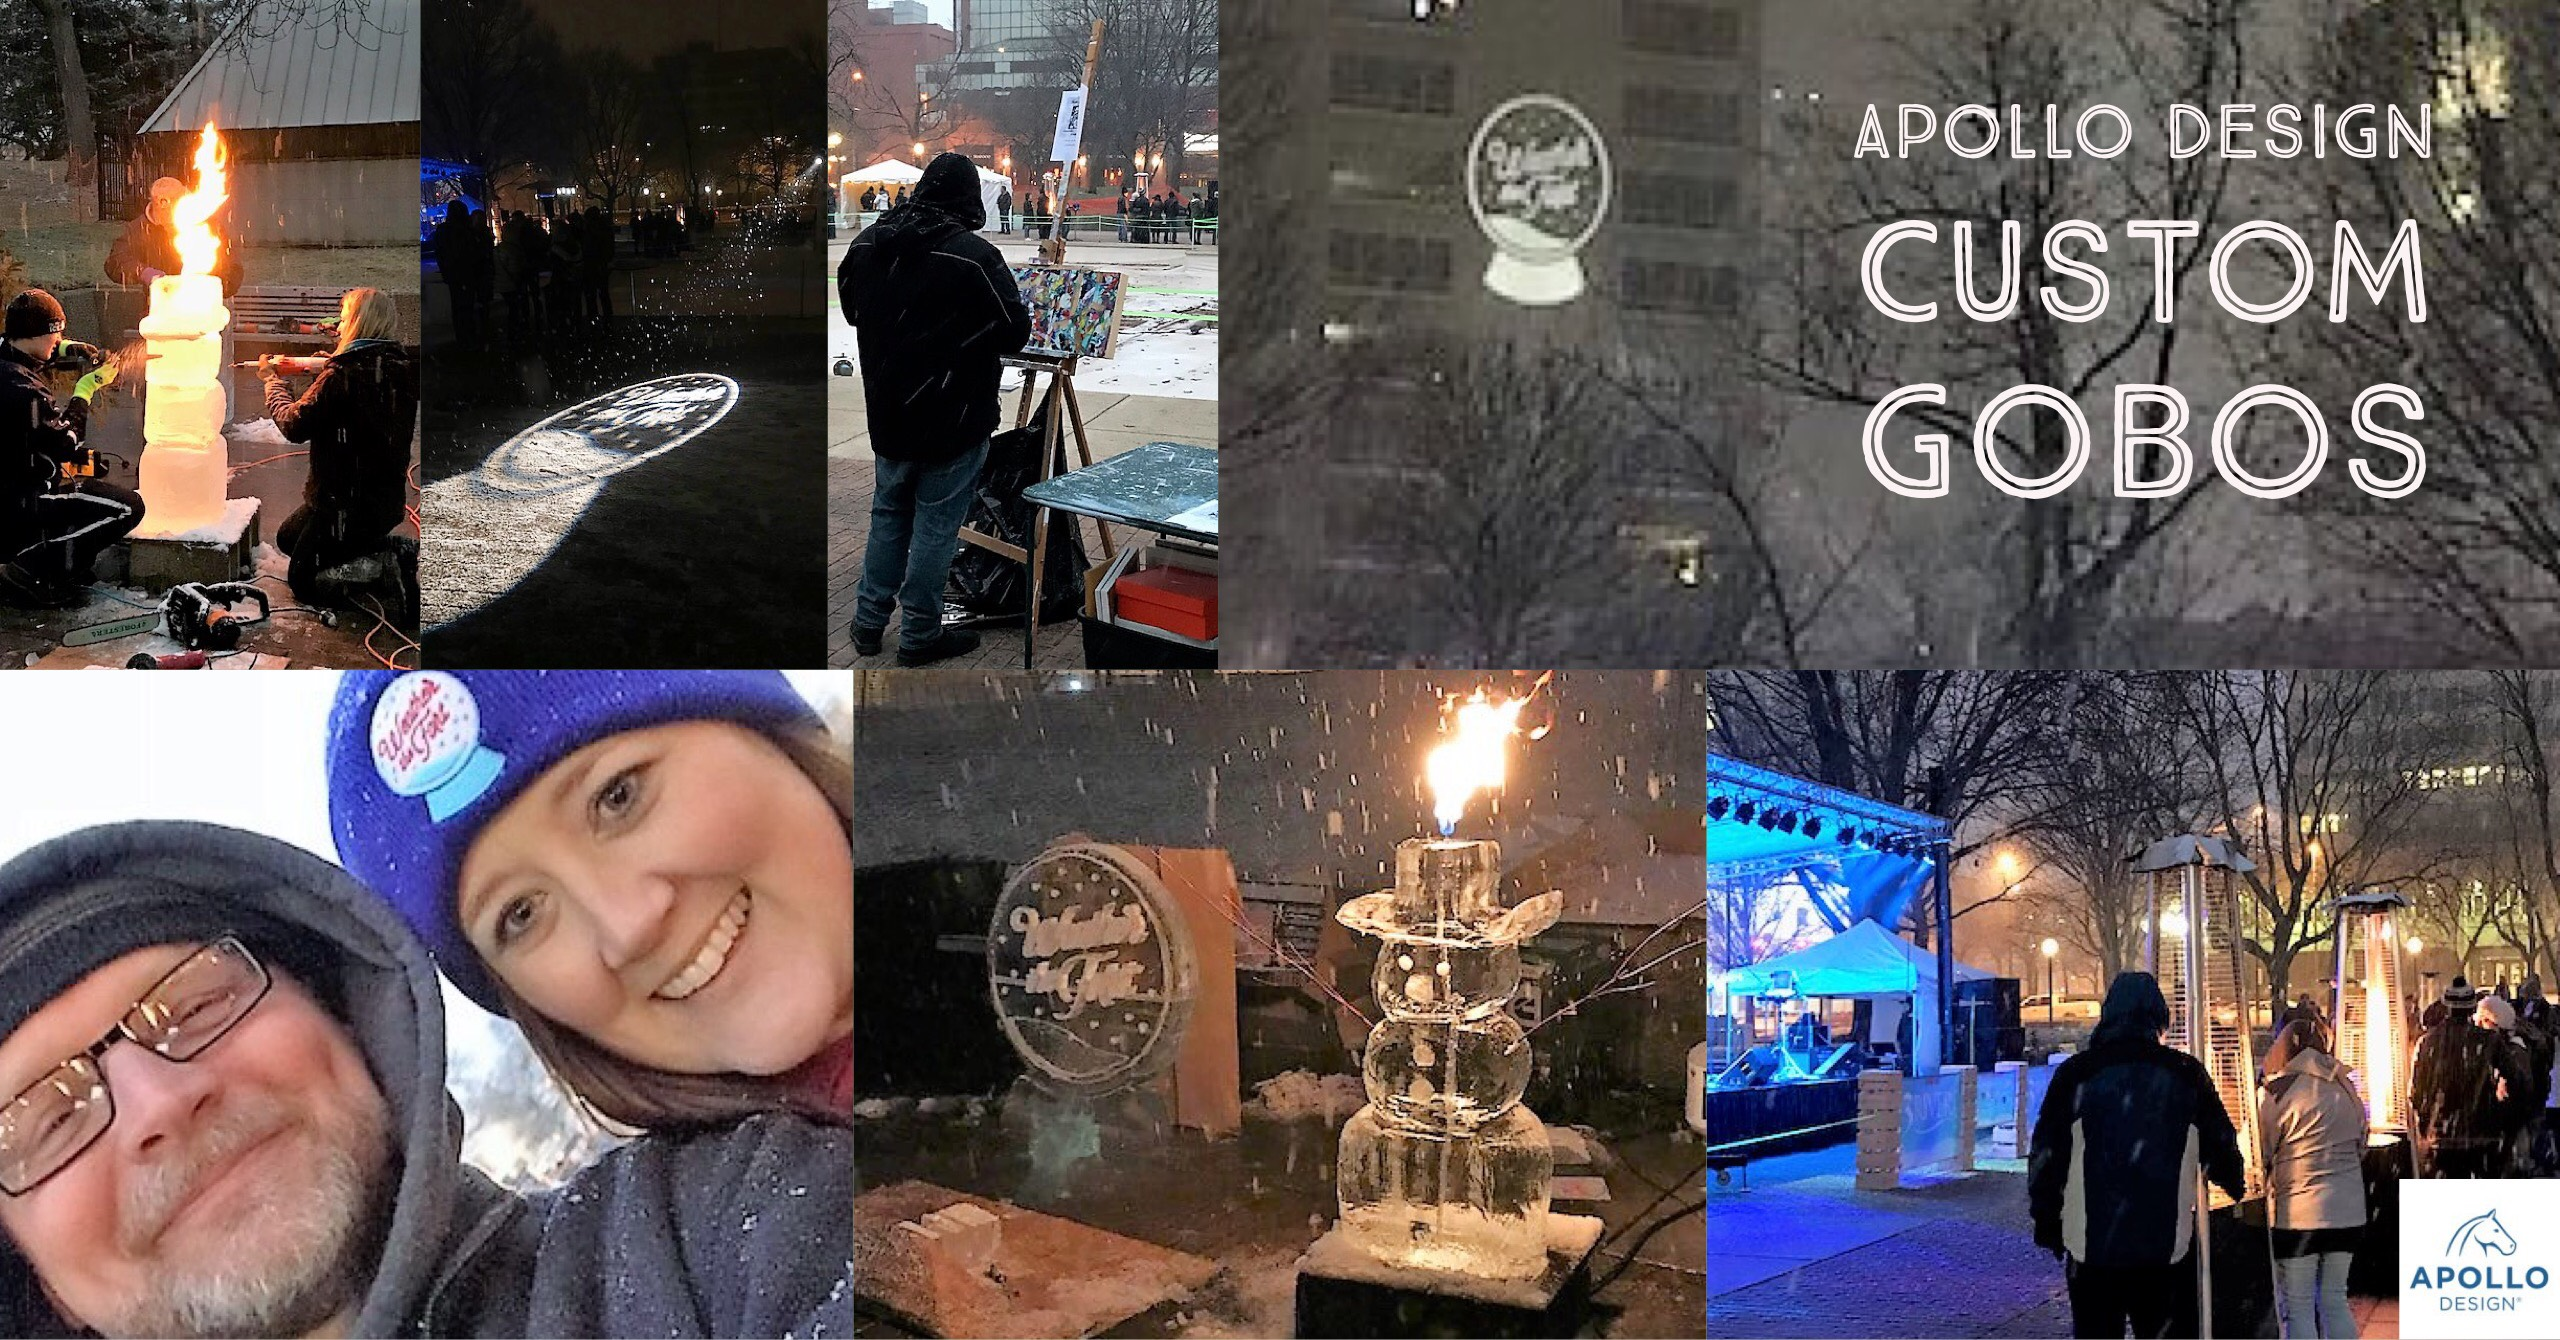 Collage of images Taken At Weather the Fort Winter Festival